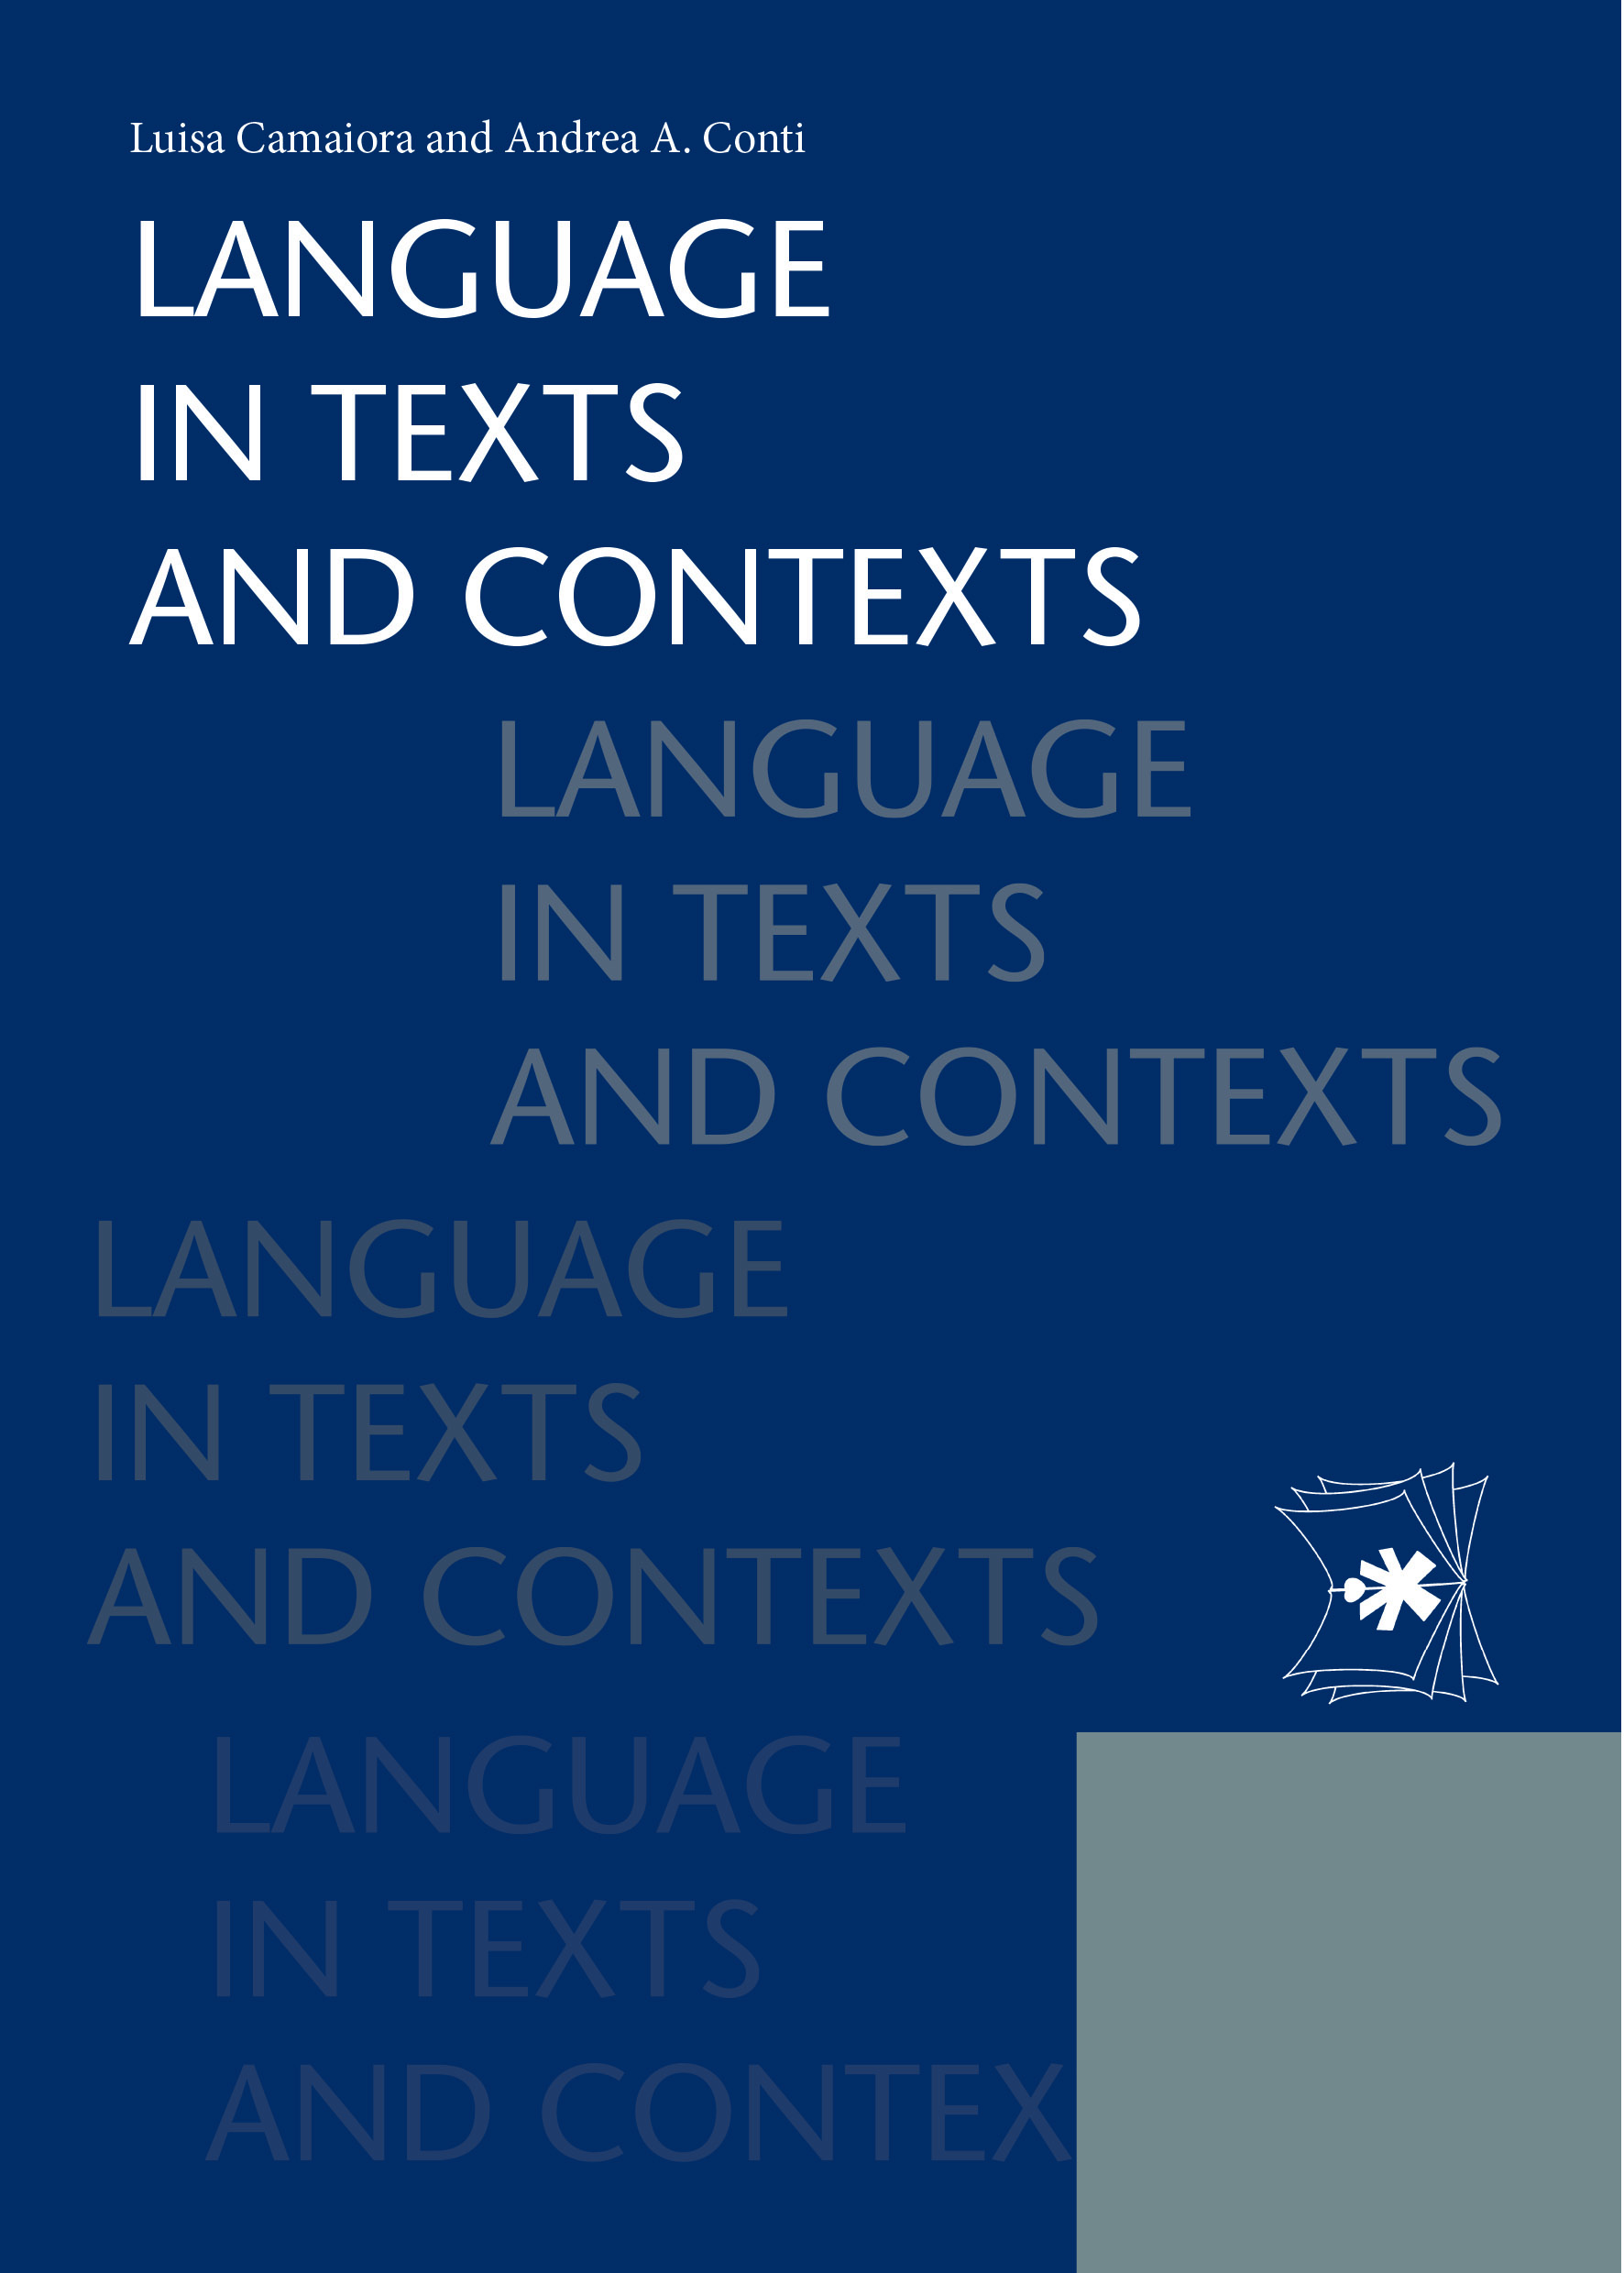 LANGUAGE IN TEXTS AND CONTEXTS